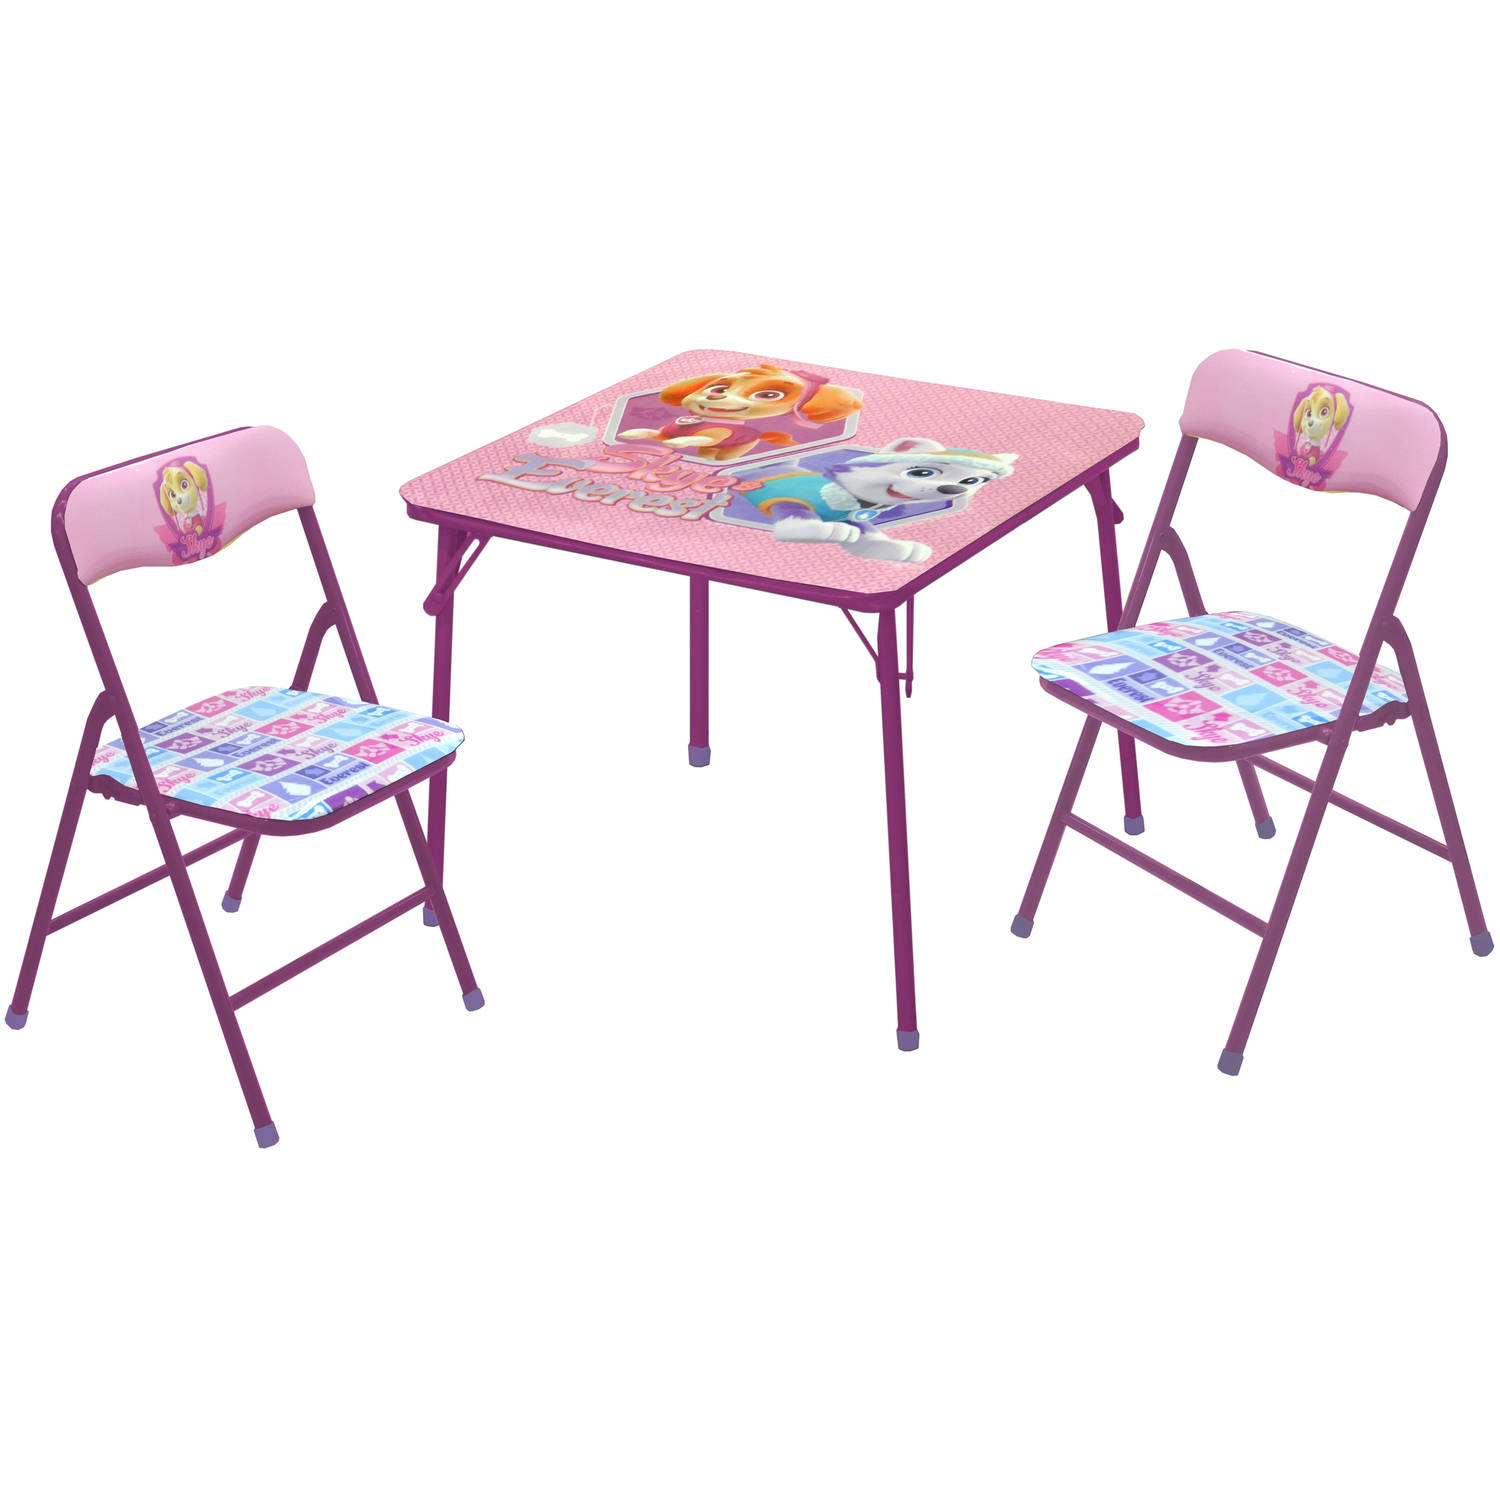 mickey mouse clubhouse table and chair set child wooden rocking fun tables chairs for kids